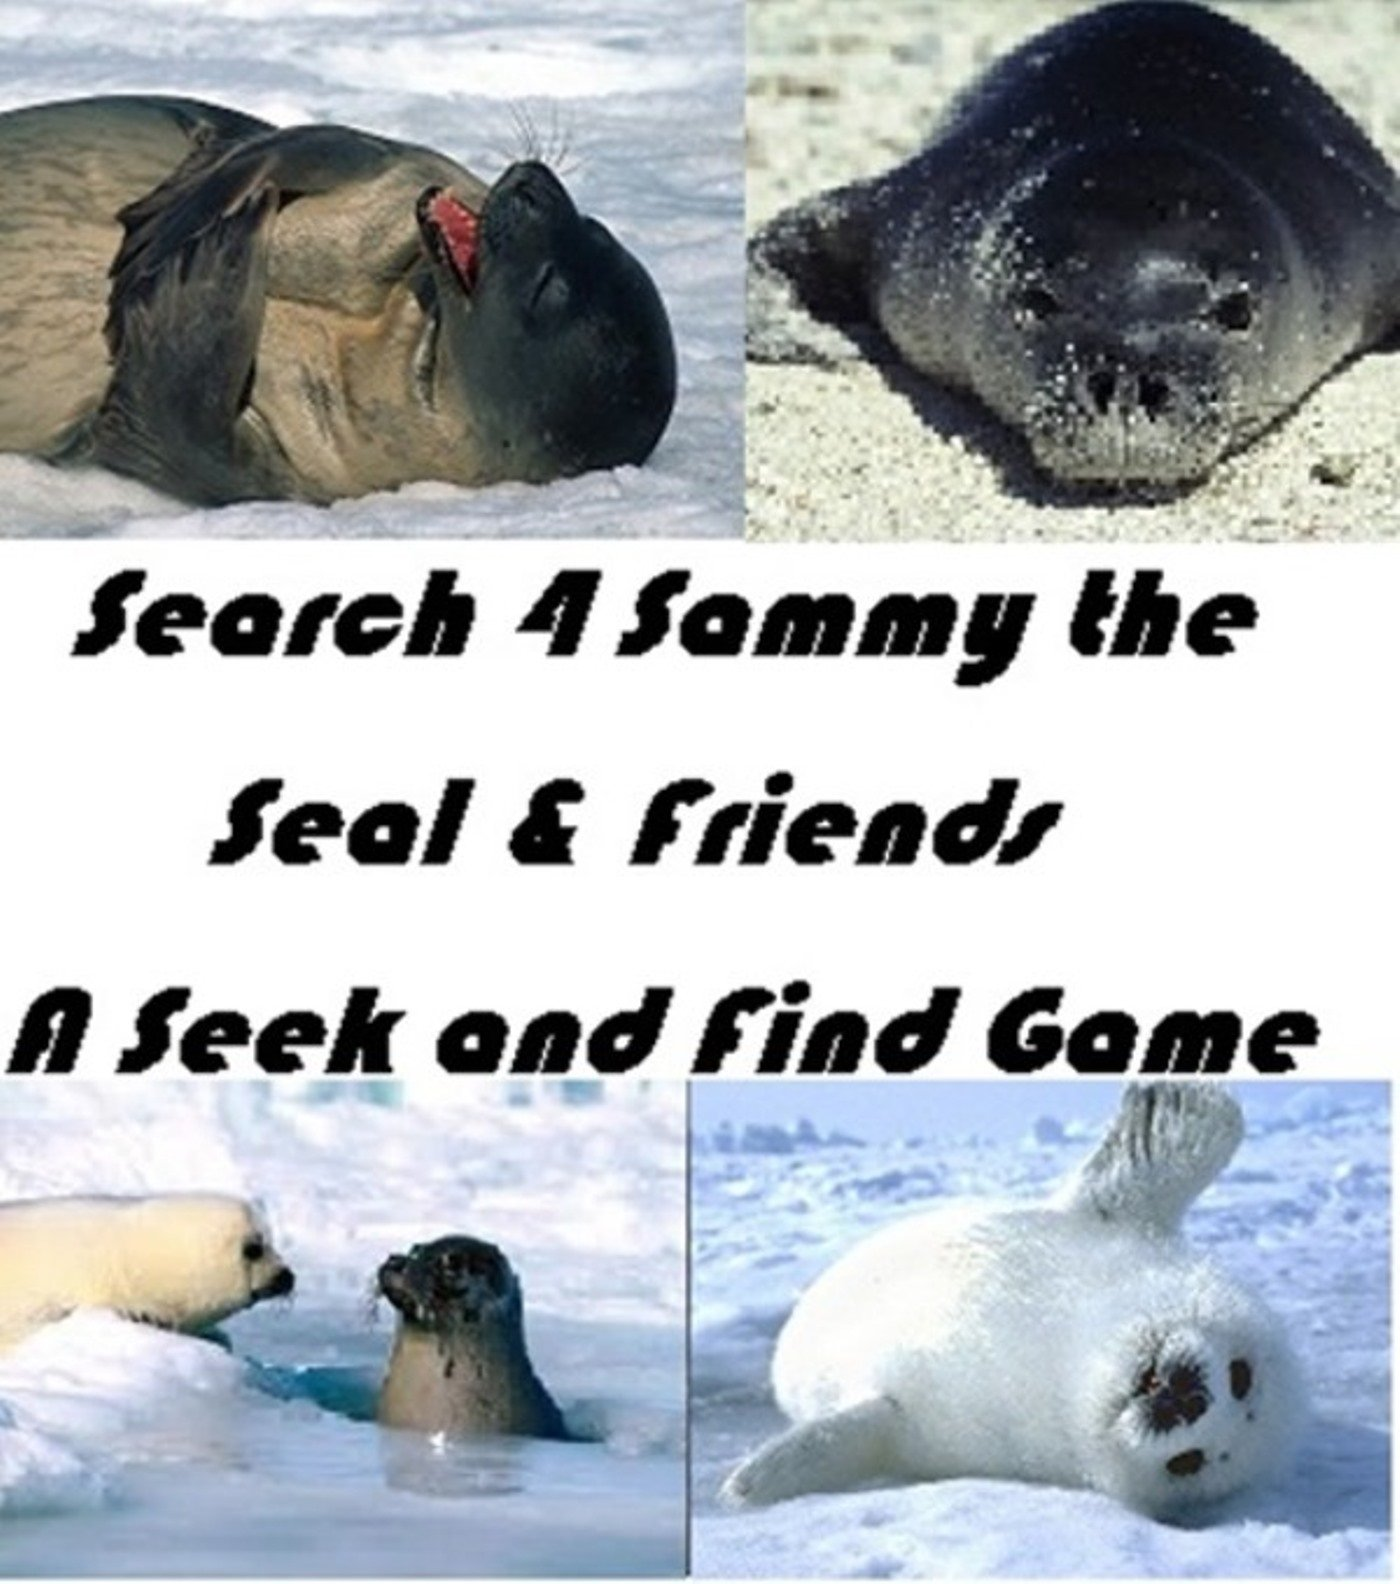 99 Cents Games Search 4 Sammy the Seal and Friends!: 99 Cent Seek